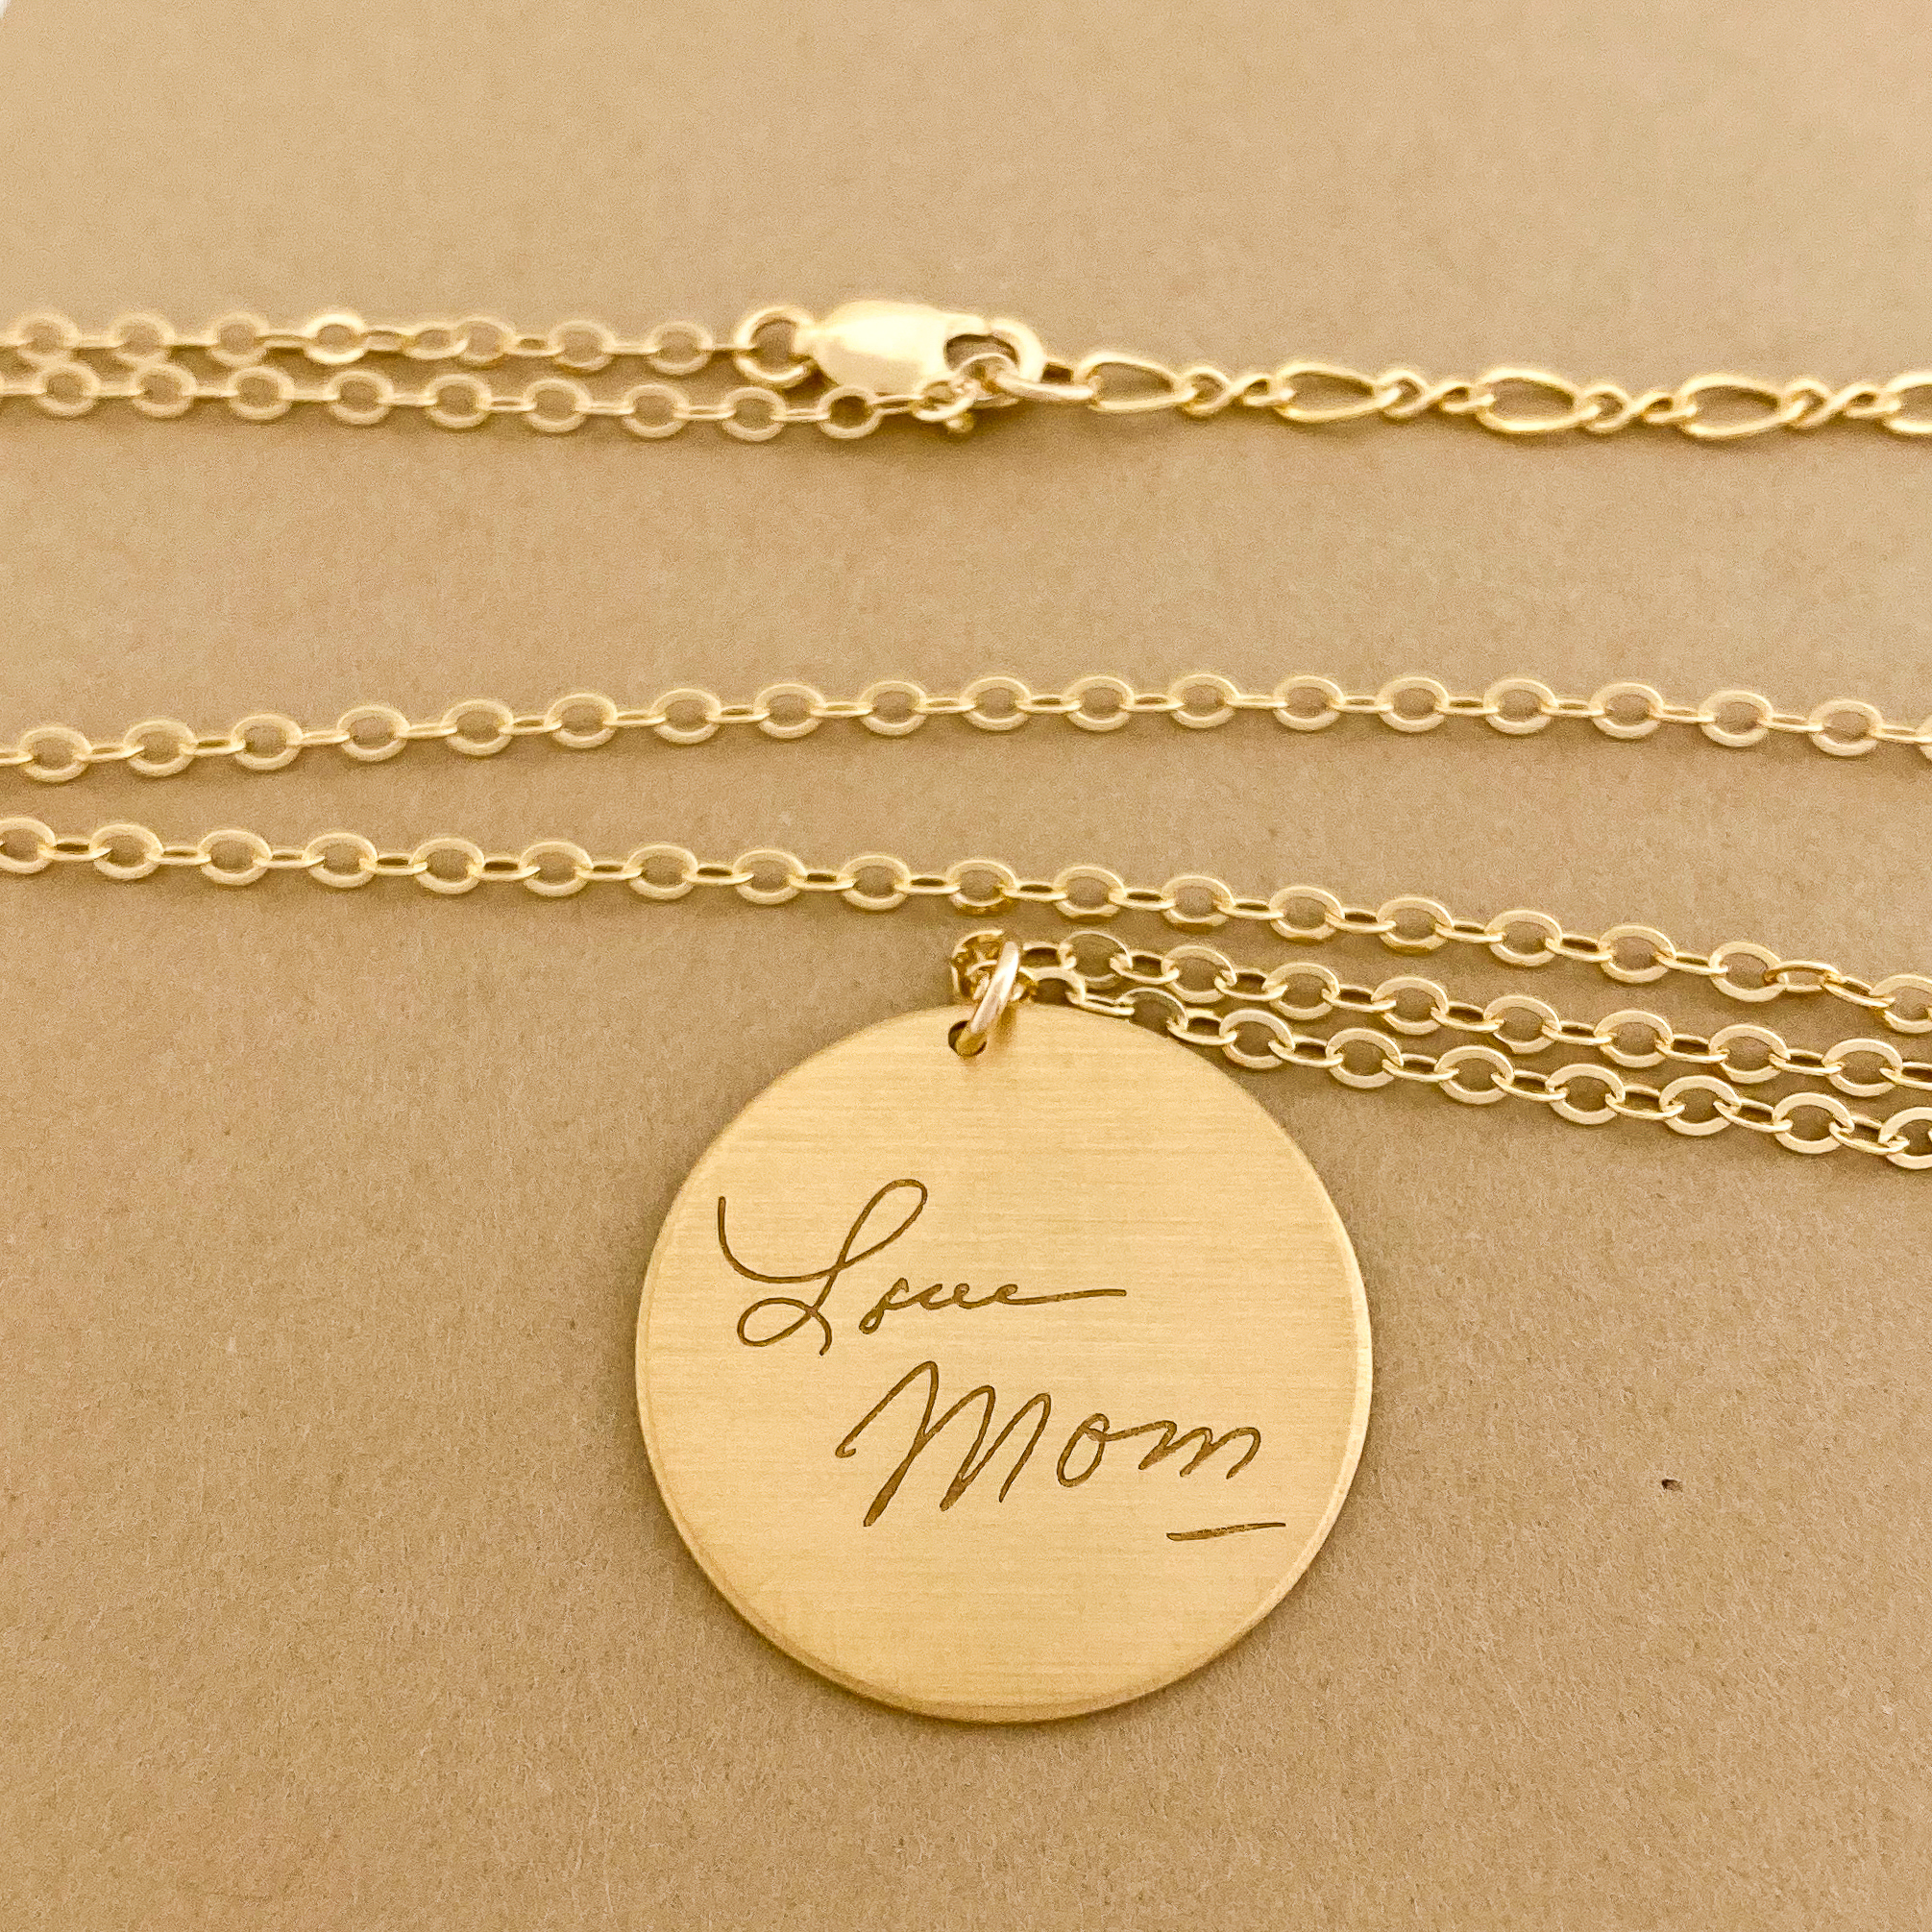 Personalized Necklaces from Scripted Jewelry